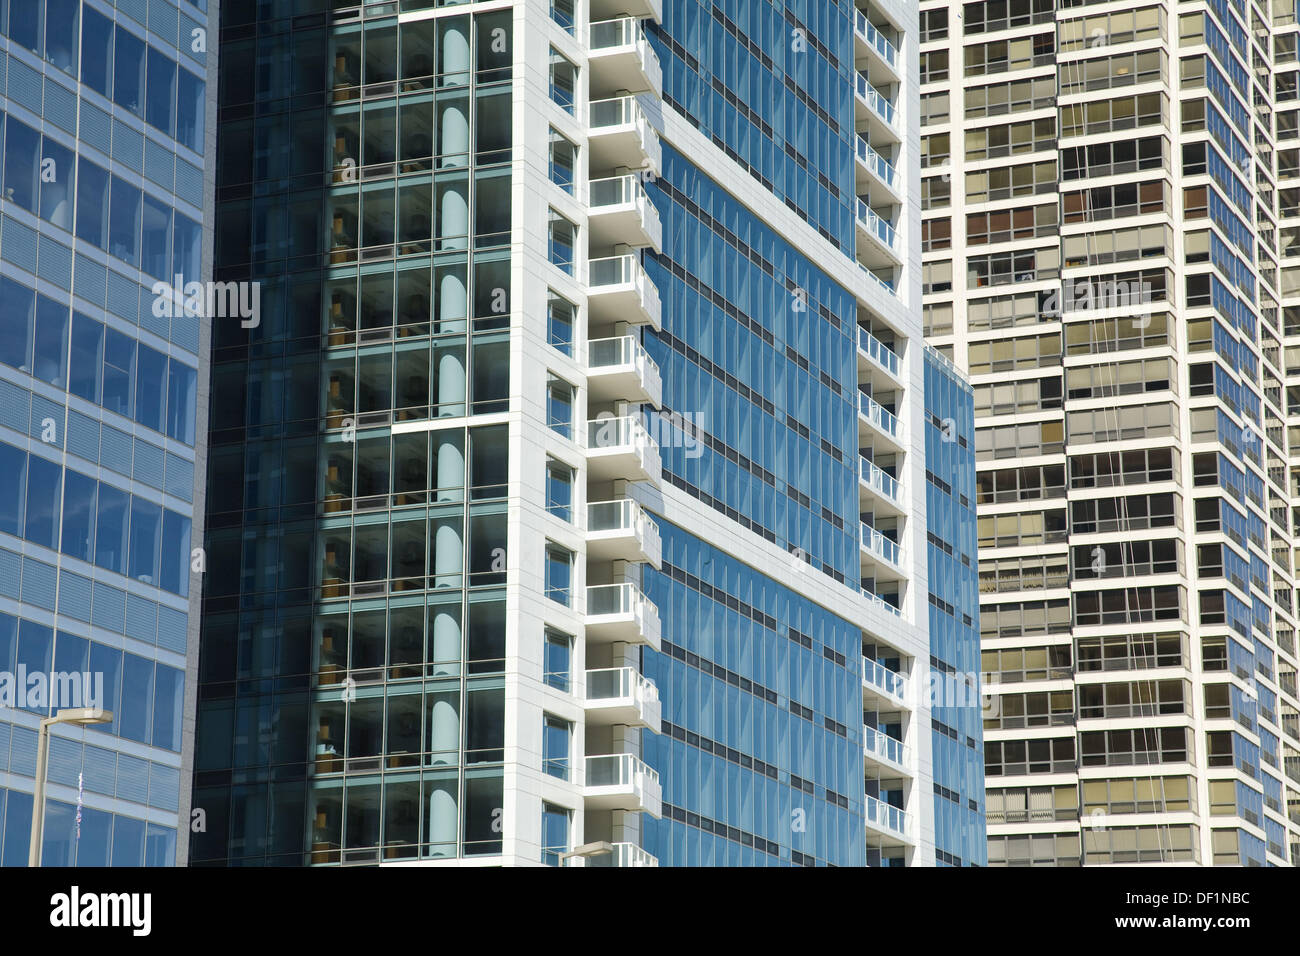 Modern Architecture Chicago windows of highrise residential buildings, compressed view, modern